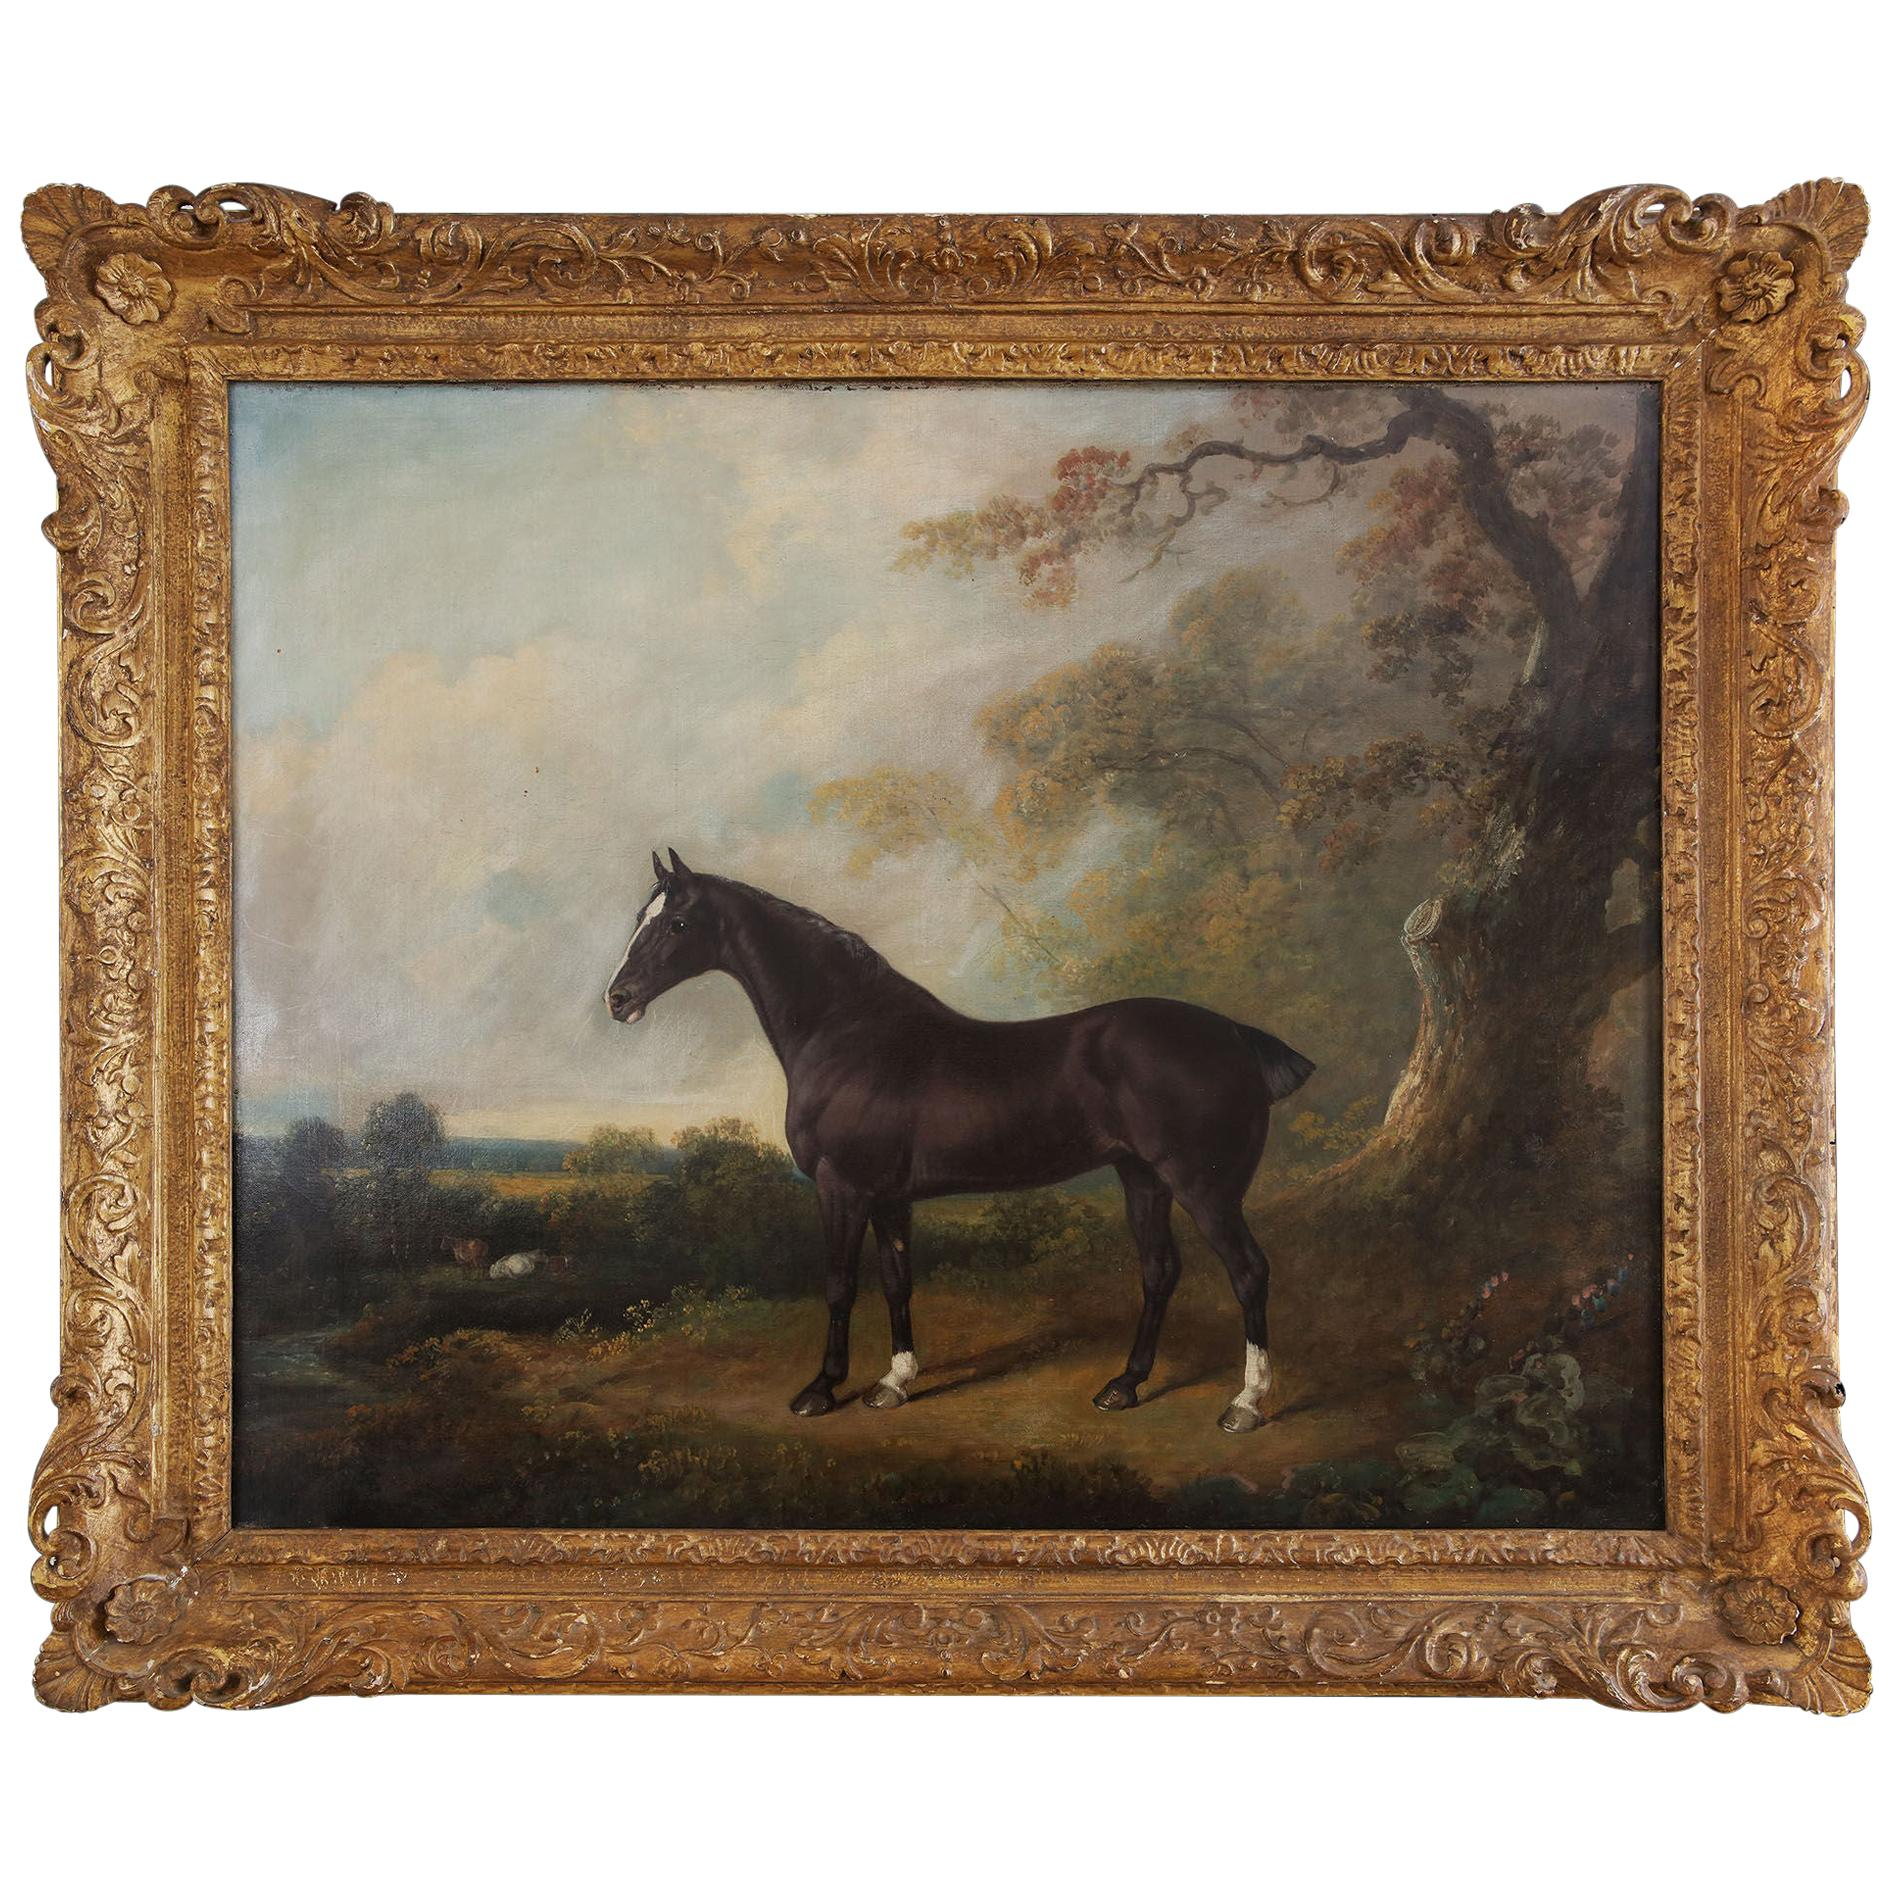 Oil Painting of a Horse Standing Proud in Woodland, signed by the Royal Artist